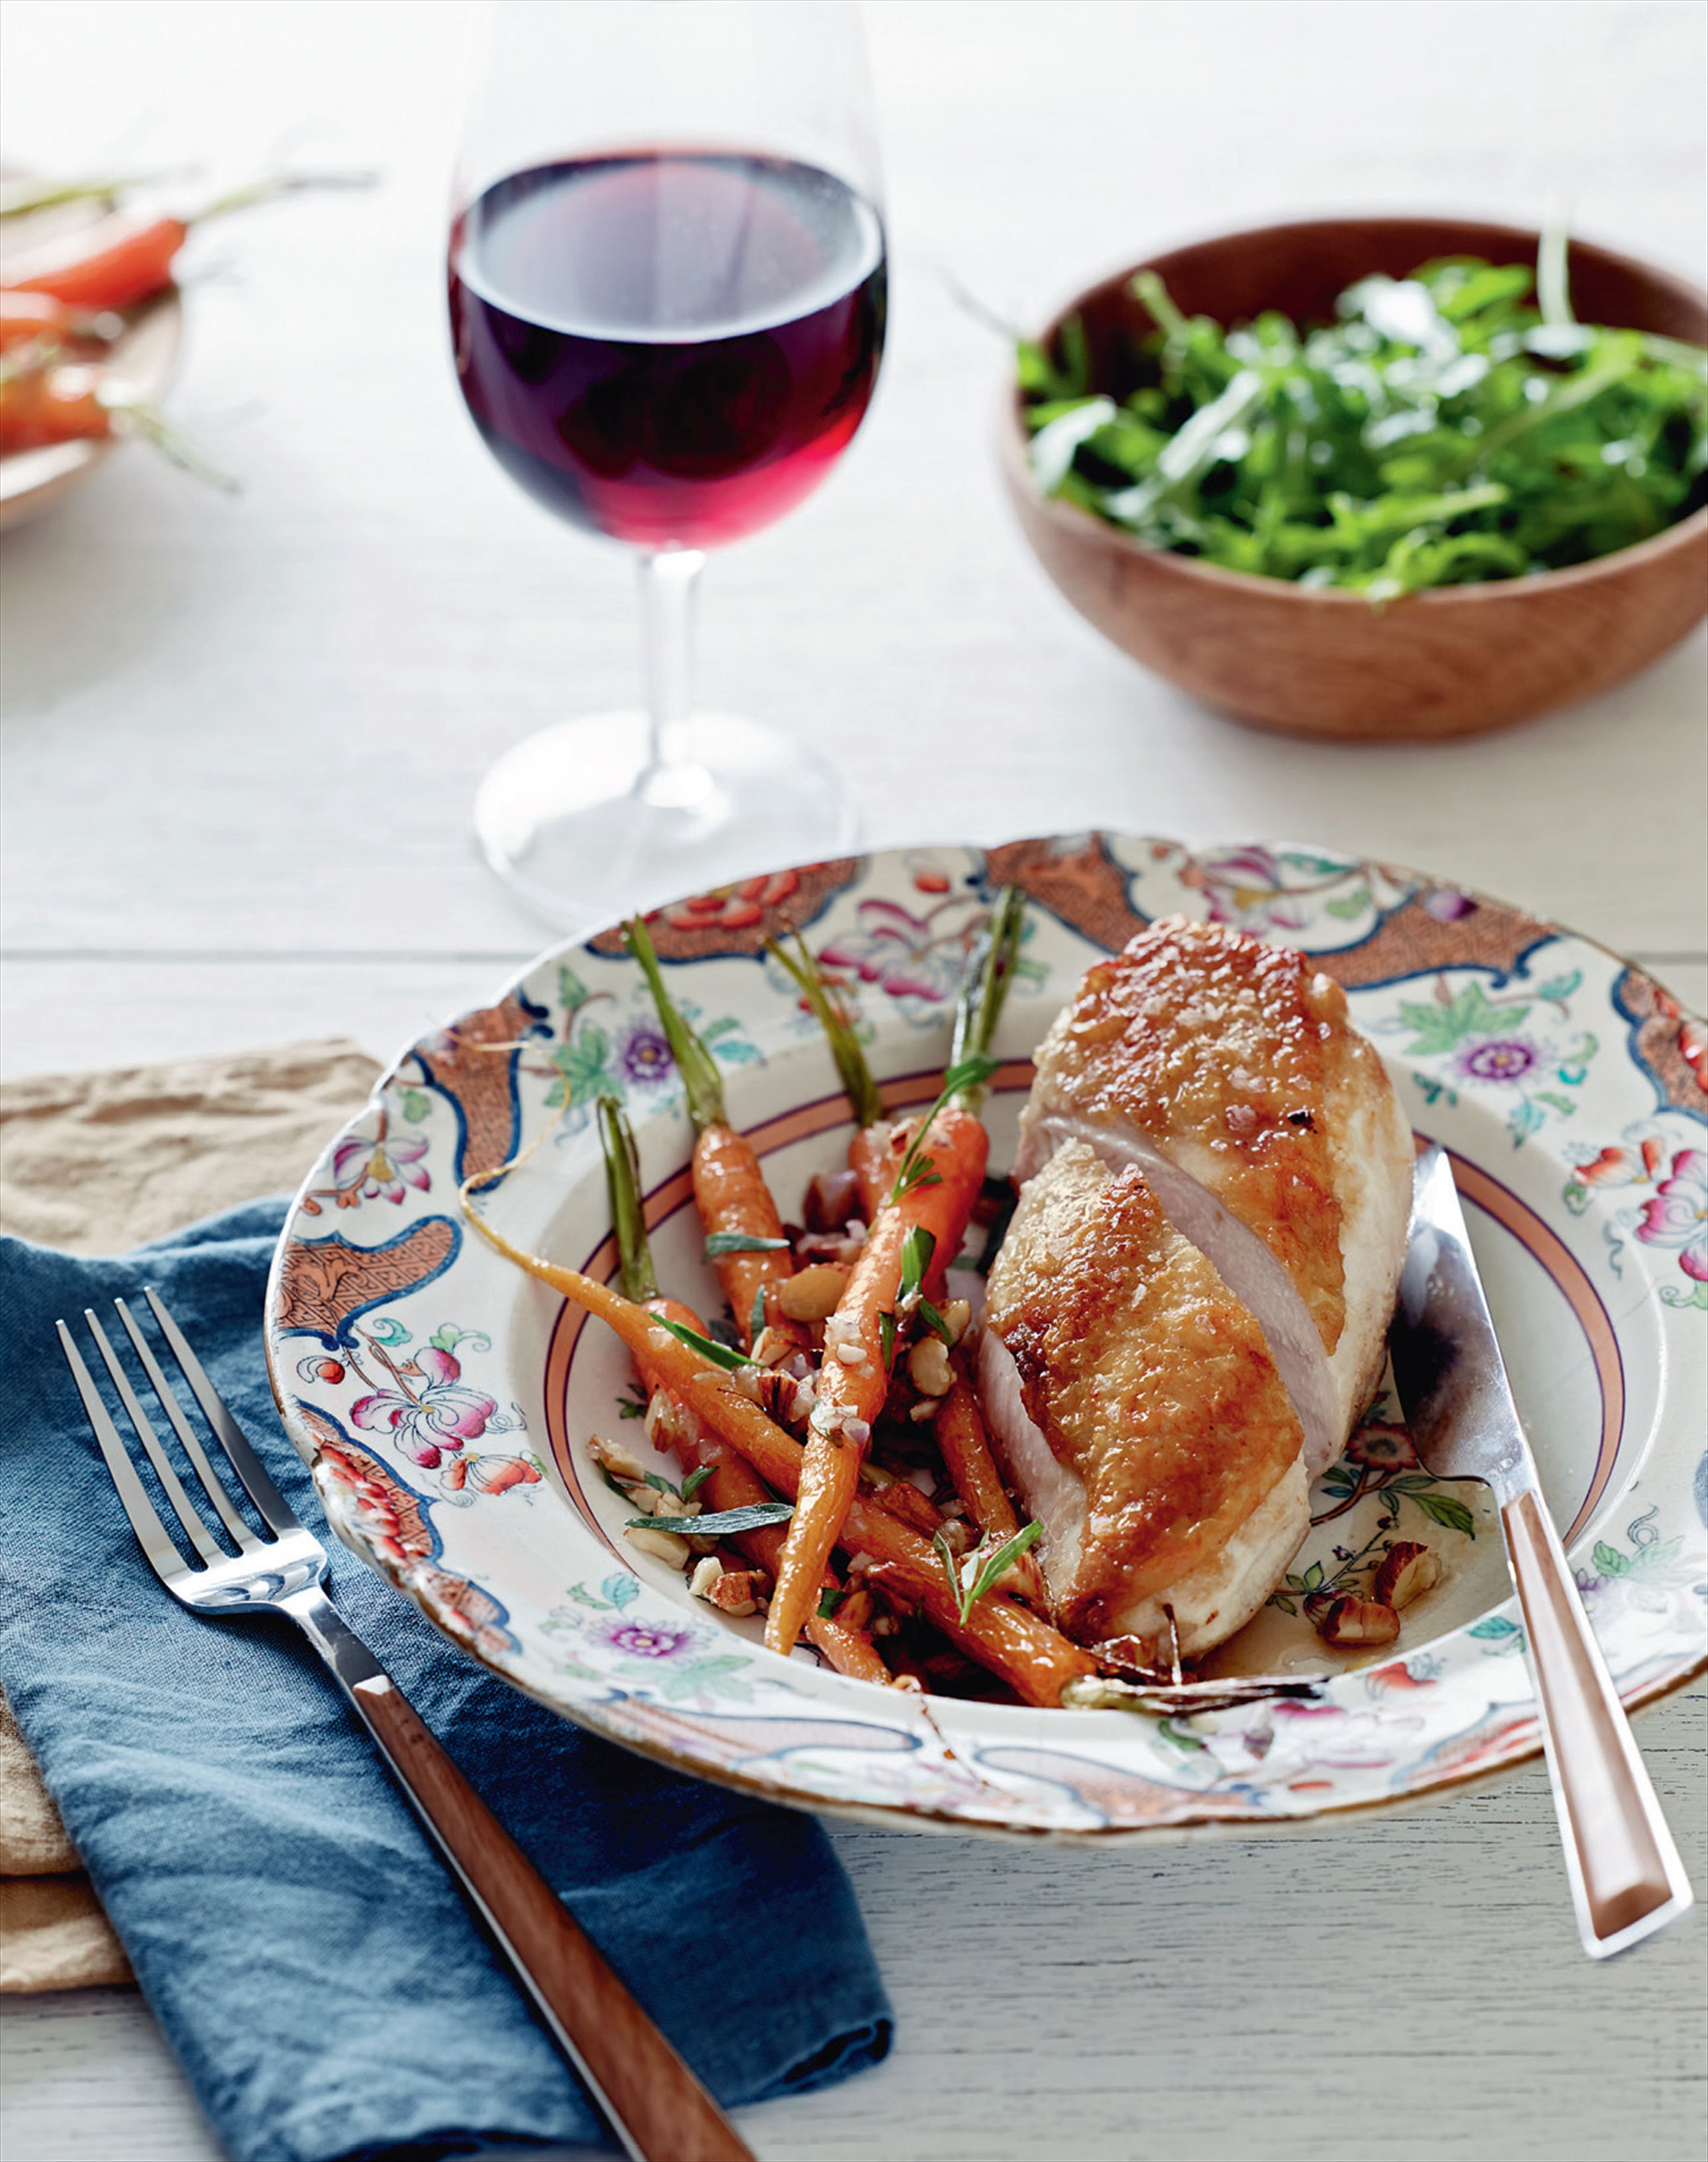 Roasted chicken with carrots and almonds